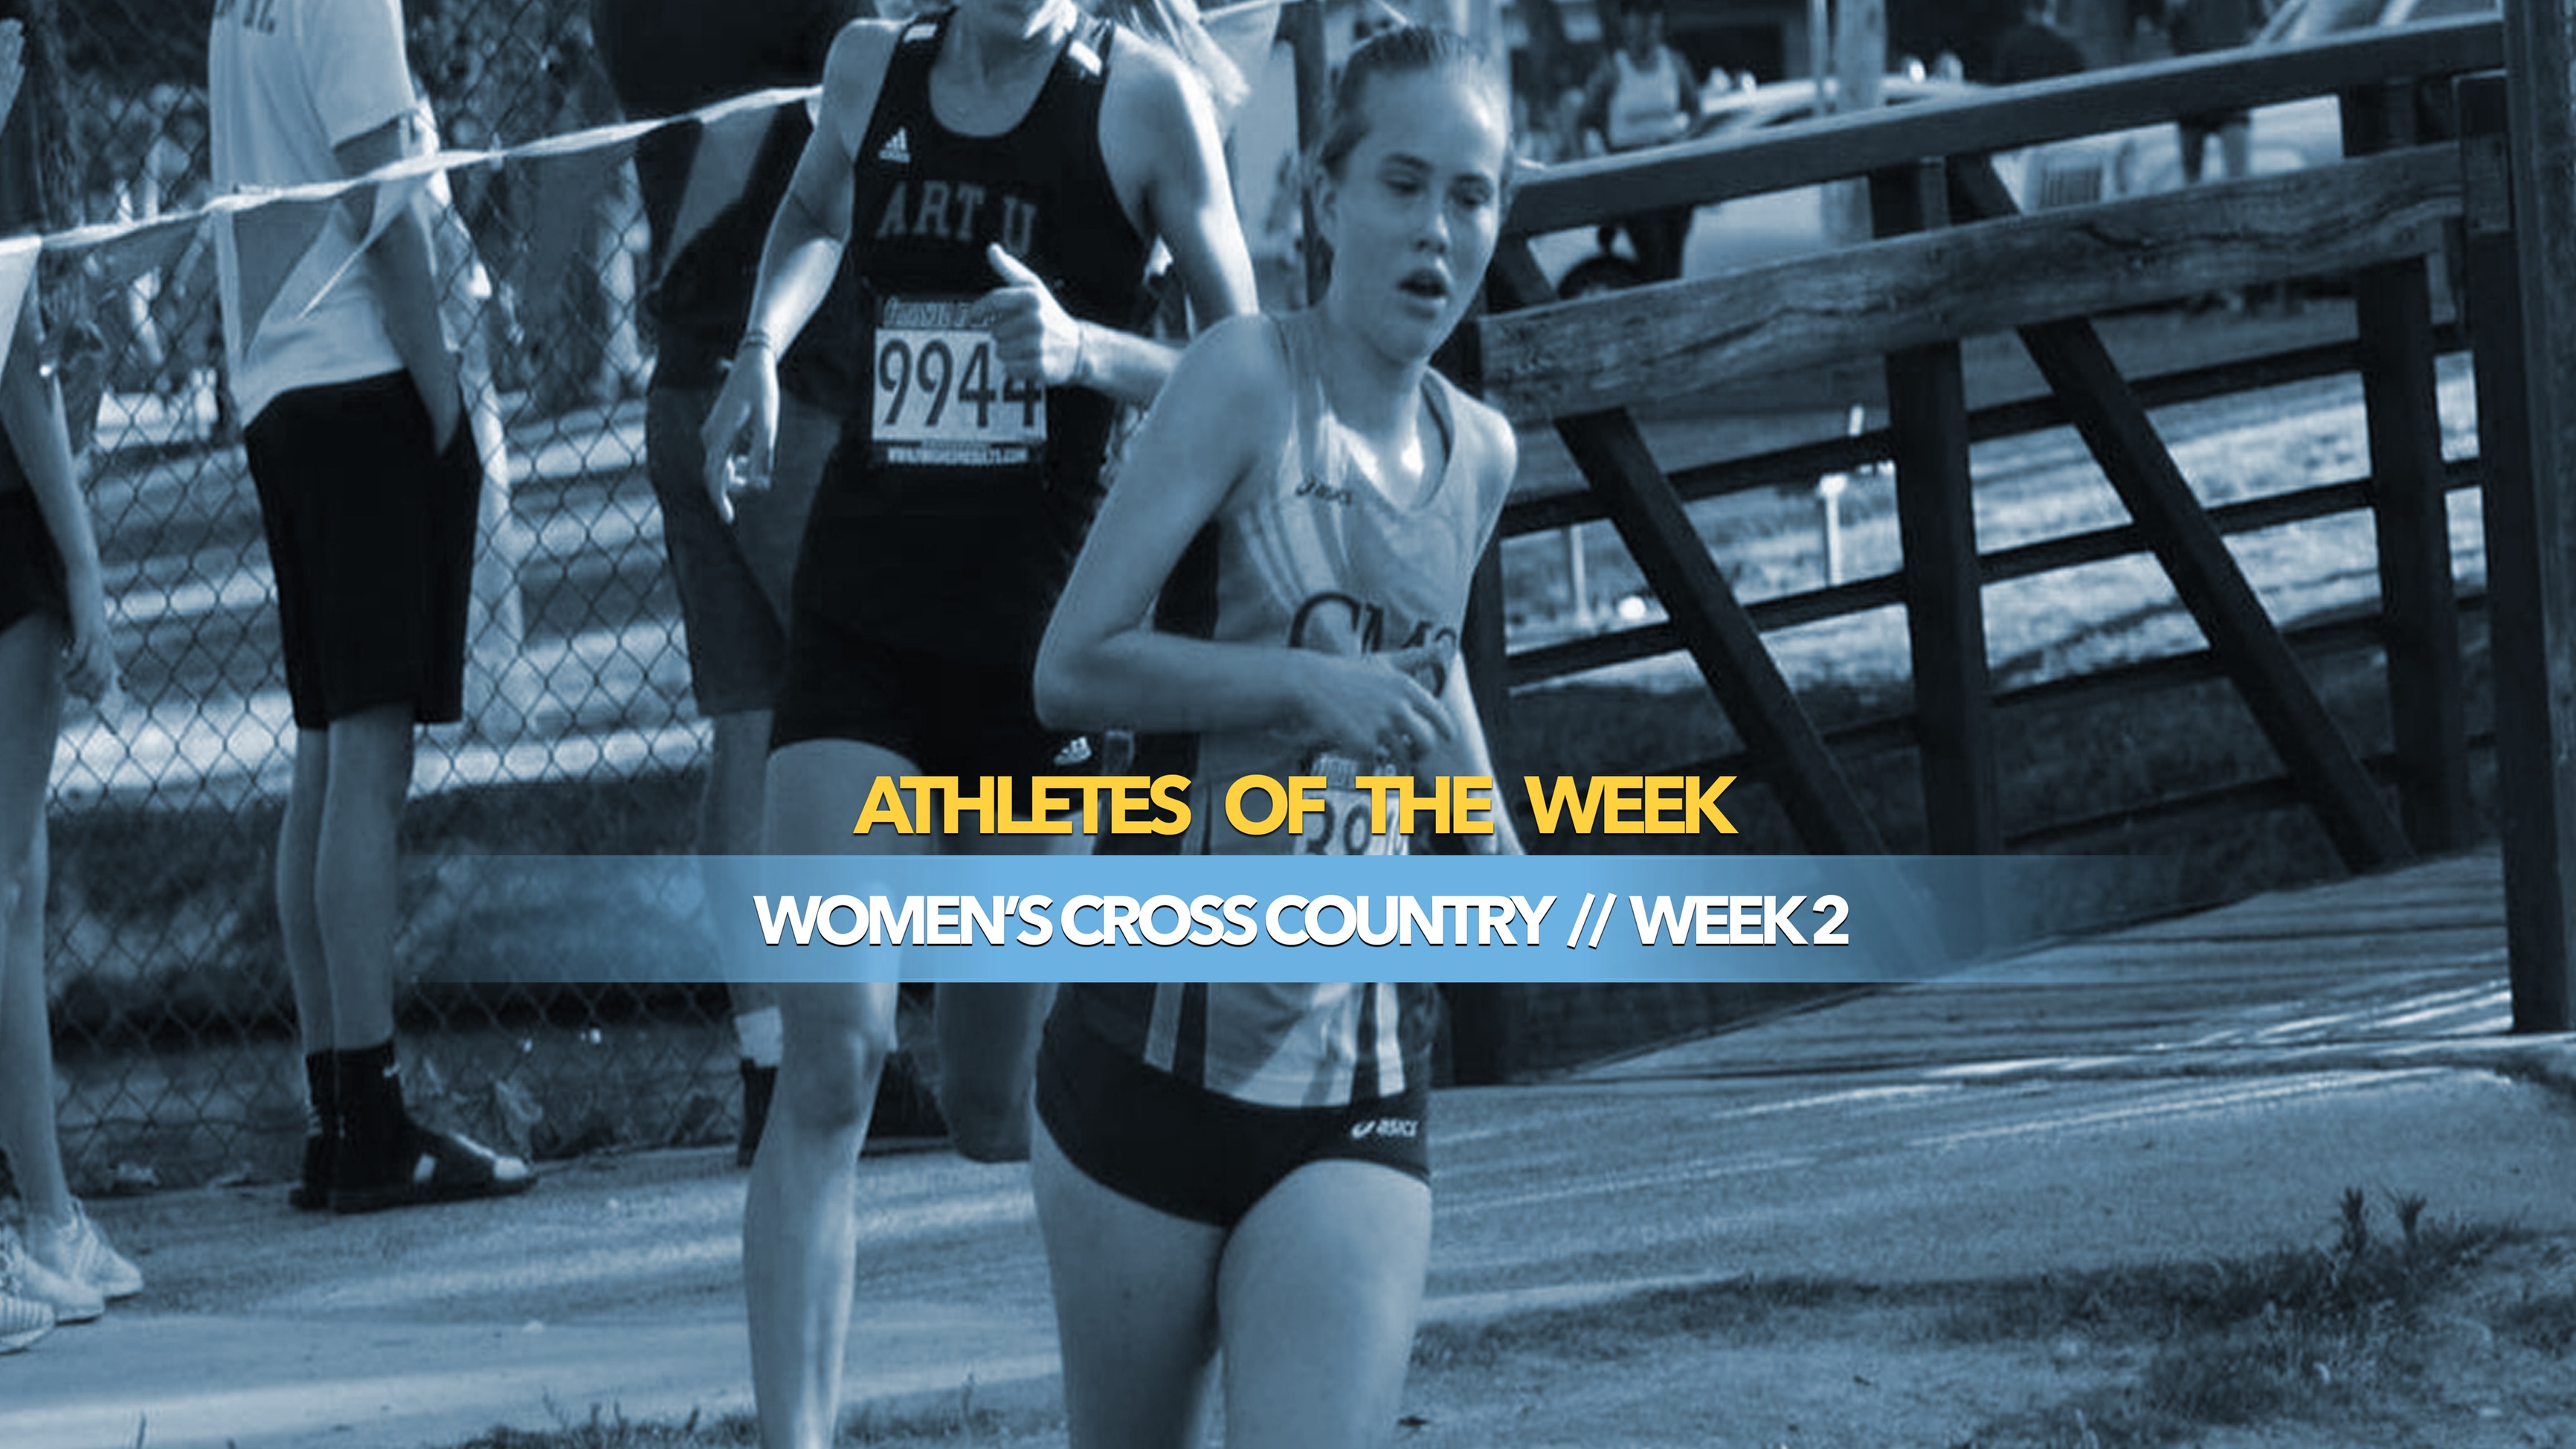 Women's Cross Country Athlete of the Week: September 9, 2019